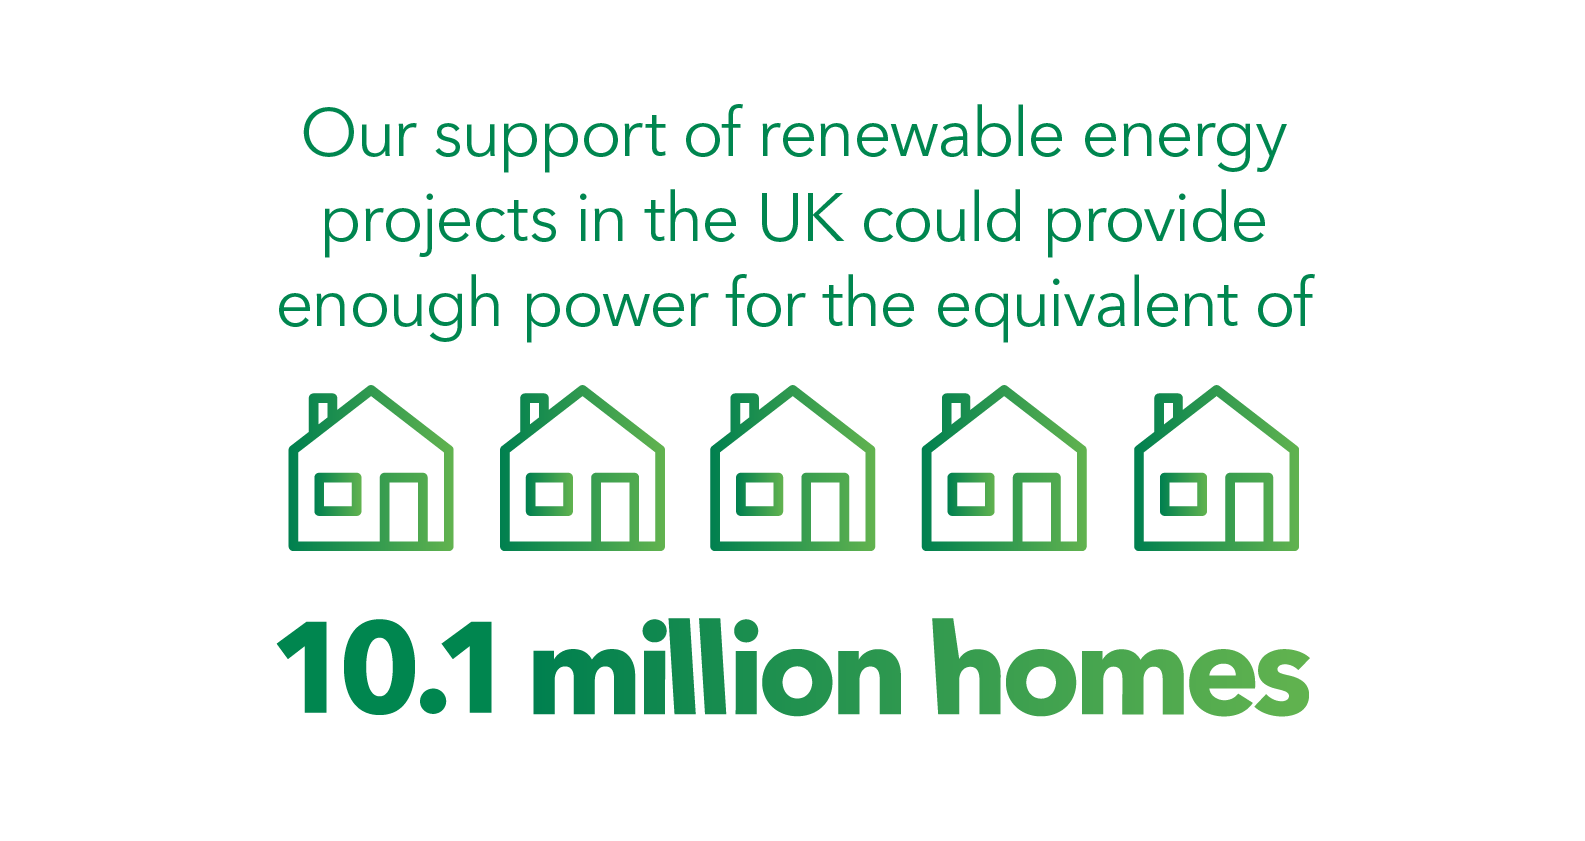 Our support for renewable energy projects in the UK can now provide enouch power for 10.1 mil homes